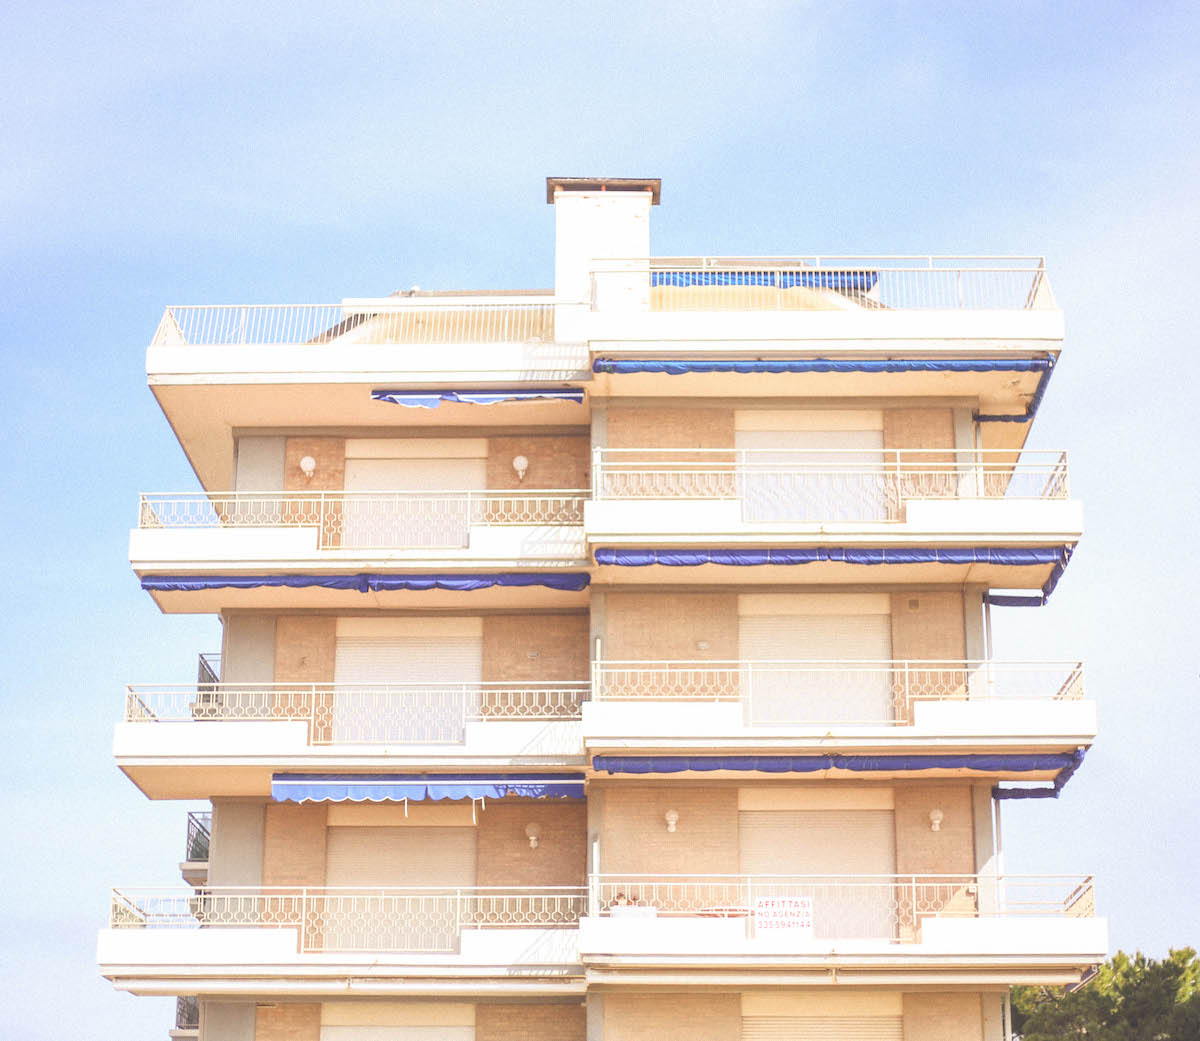 jesolo beach travel italy architecture hotel 70s.photo